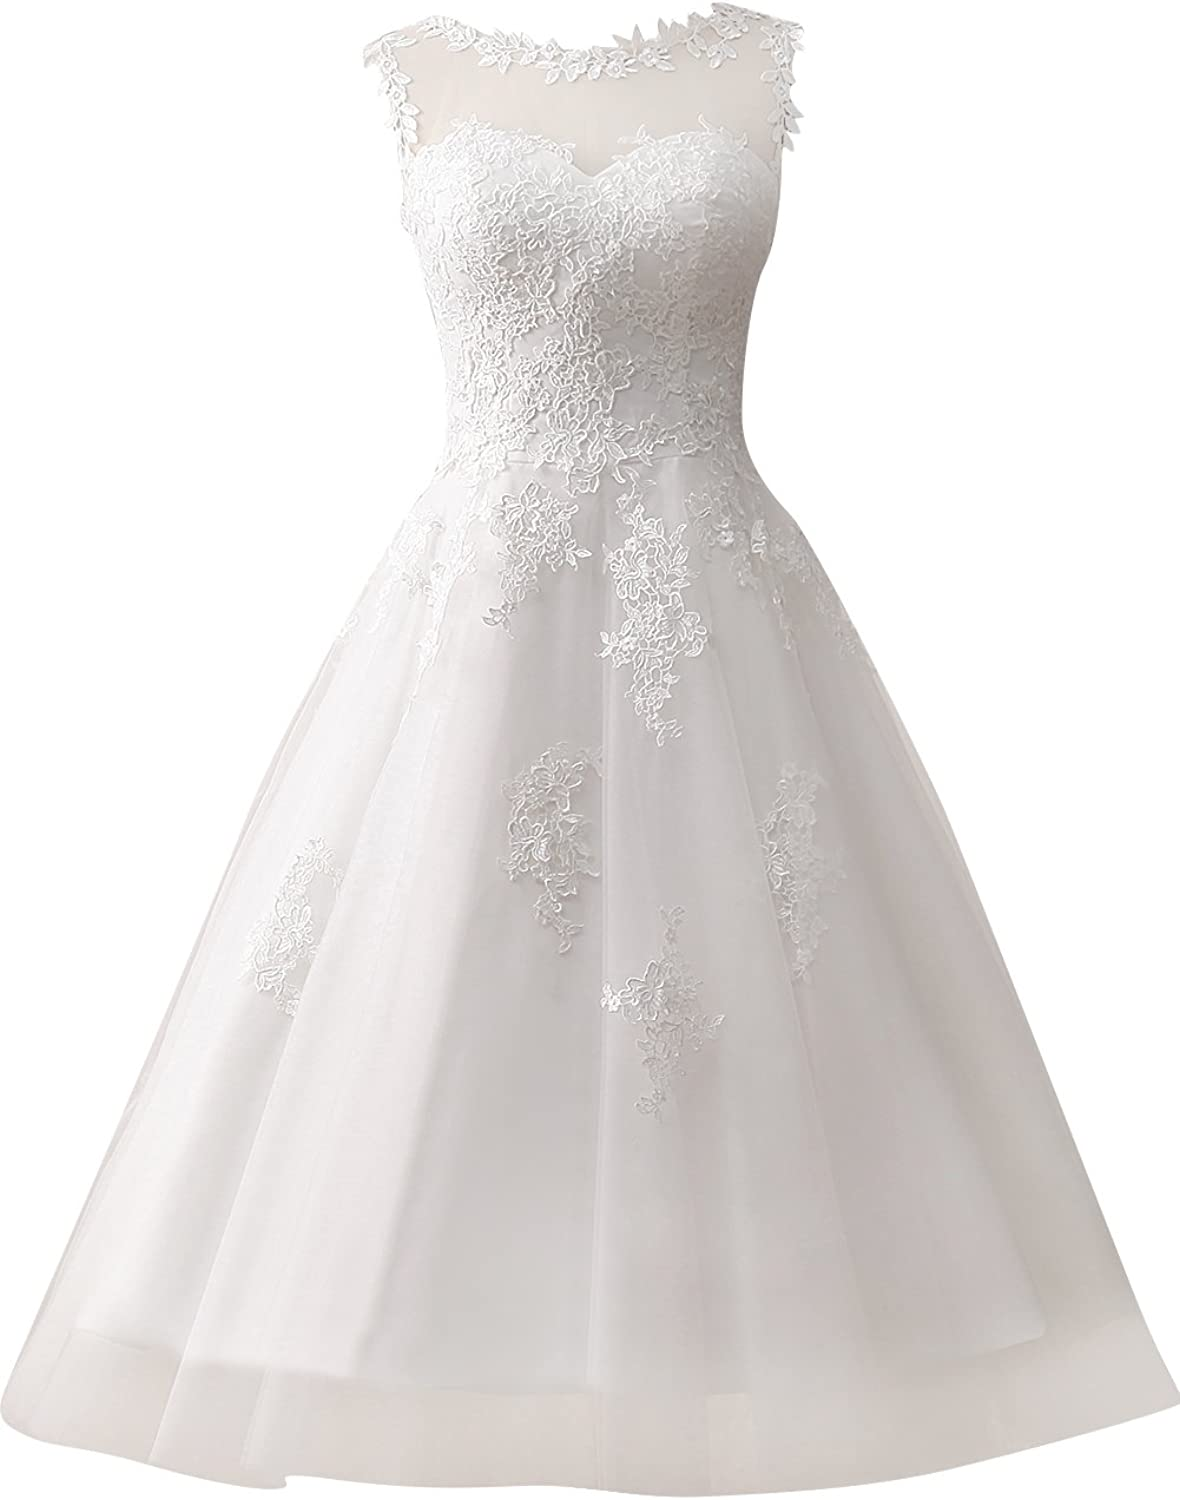 JAEDEN Short Wedding Dress Lace Bridal Gown Tulle Appliques Sleeveless